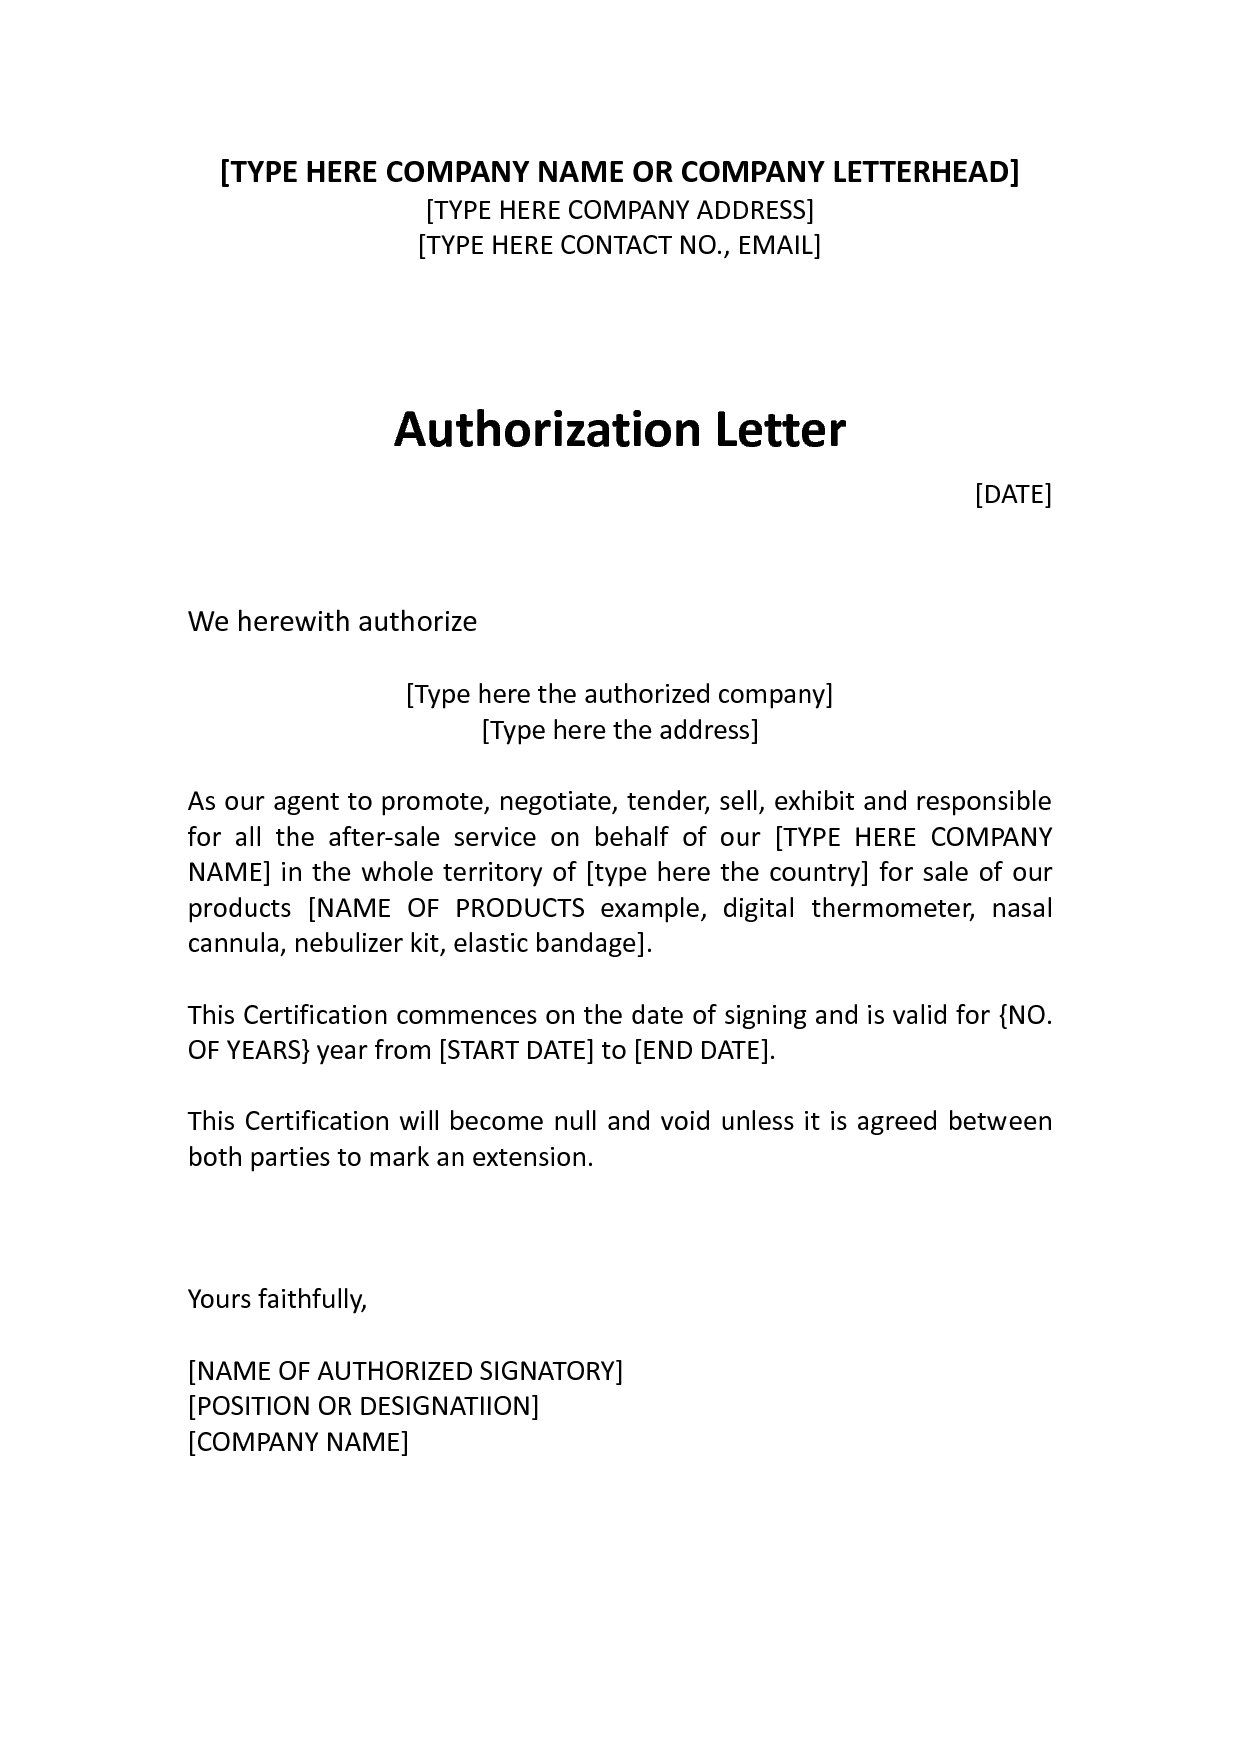 Authorization Distributor Letter - sample distributor